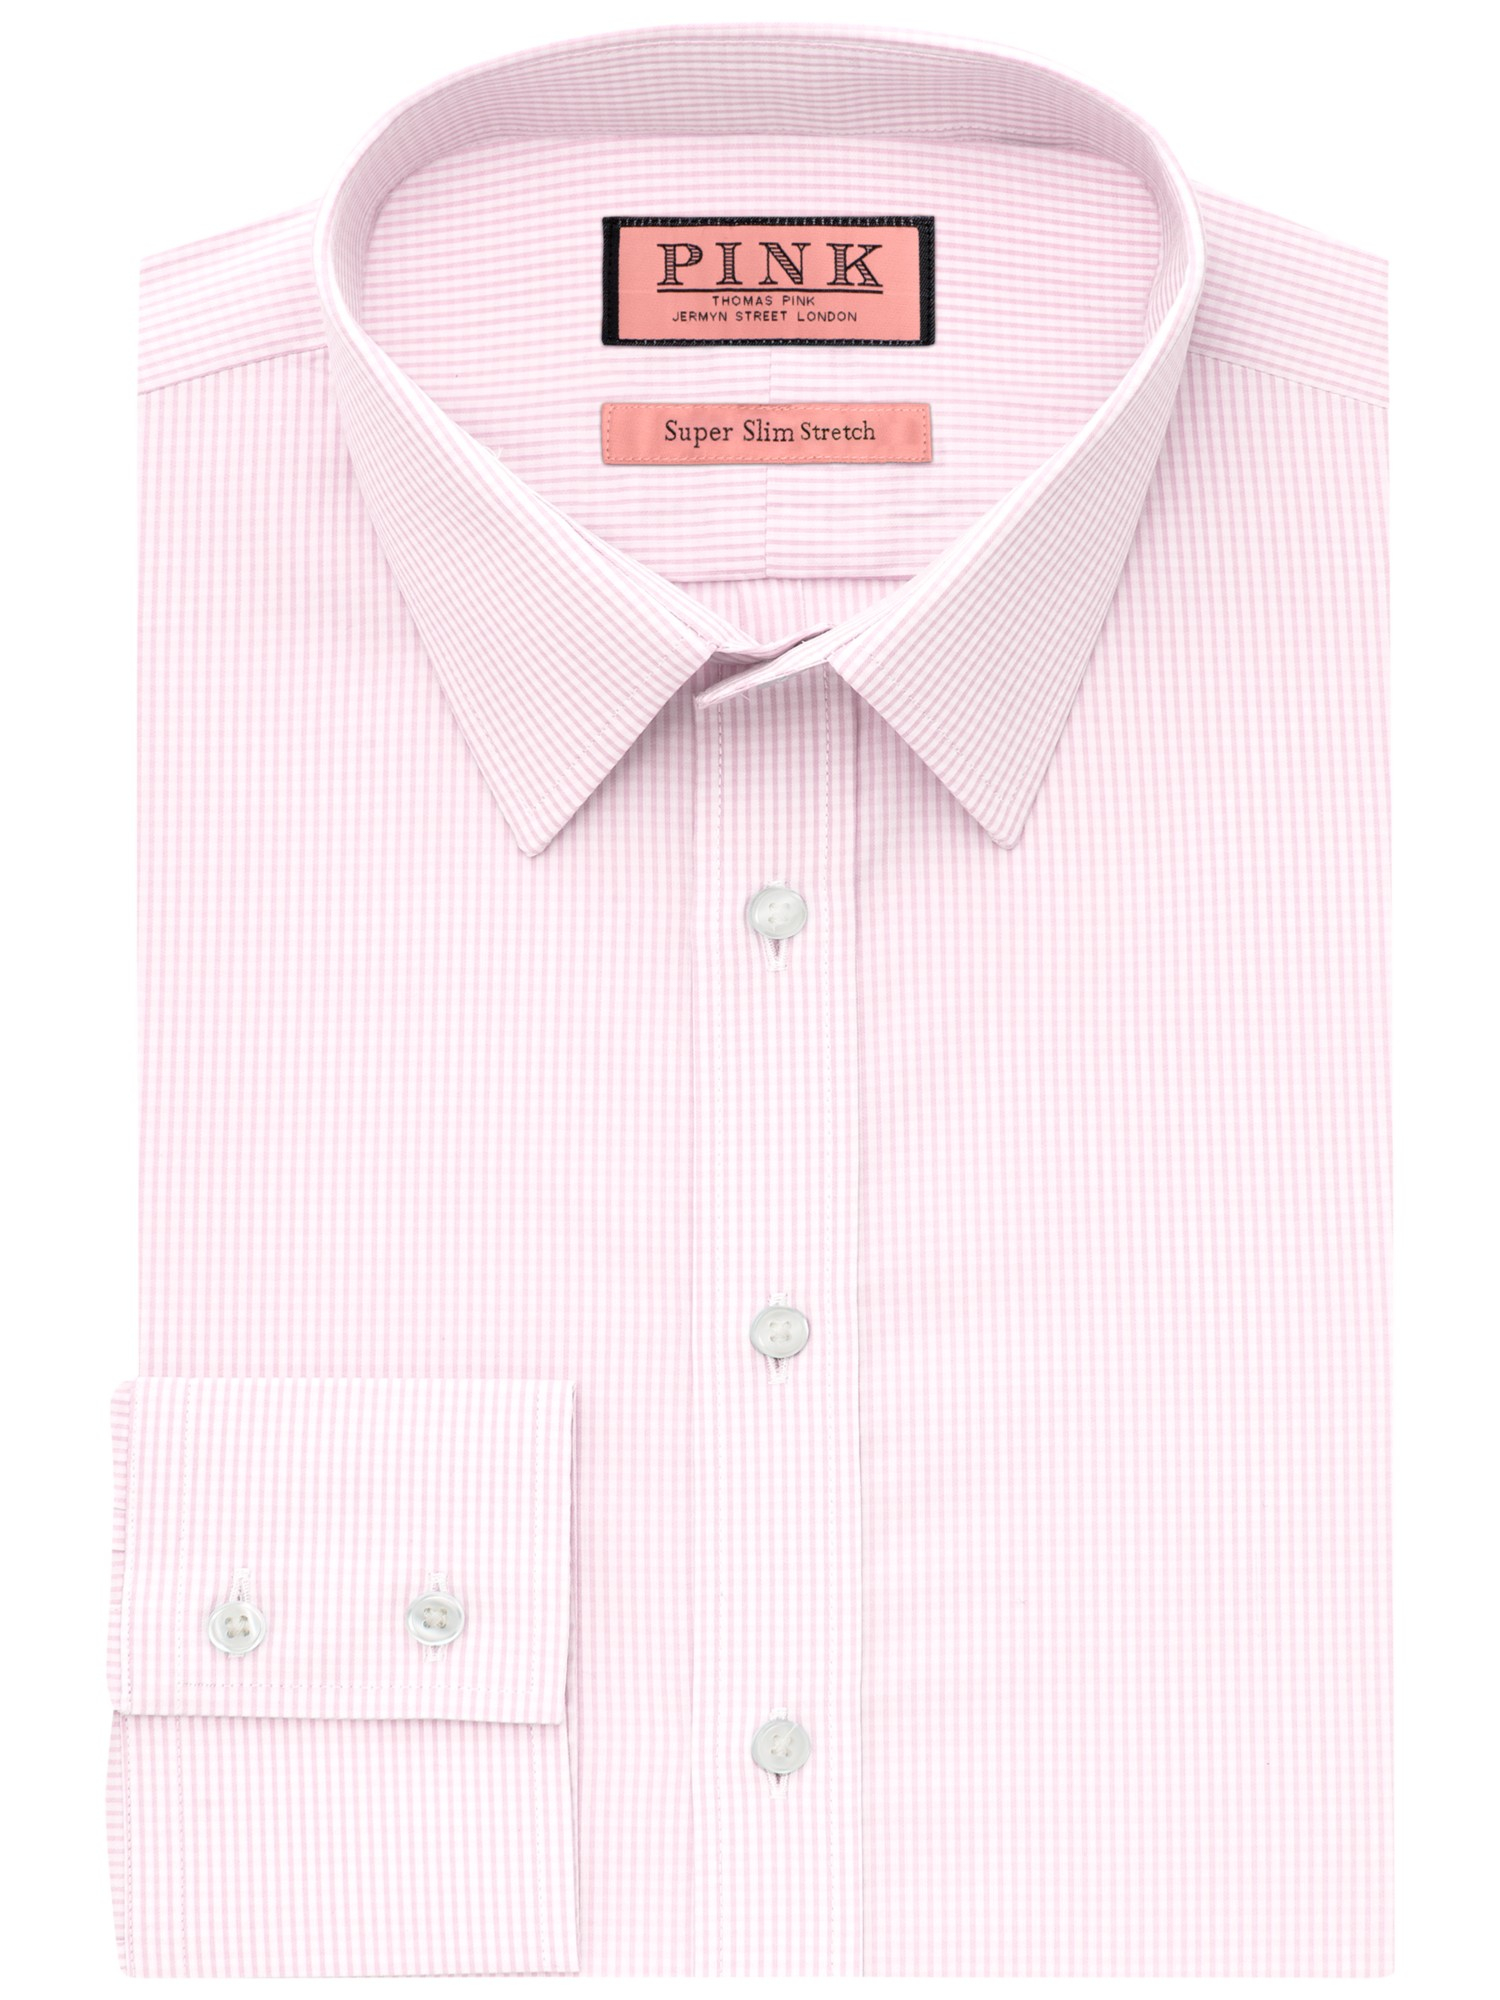 Thomas Pink Dyment Texture Super Slim Fit Shirt In Pink